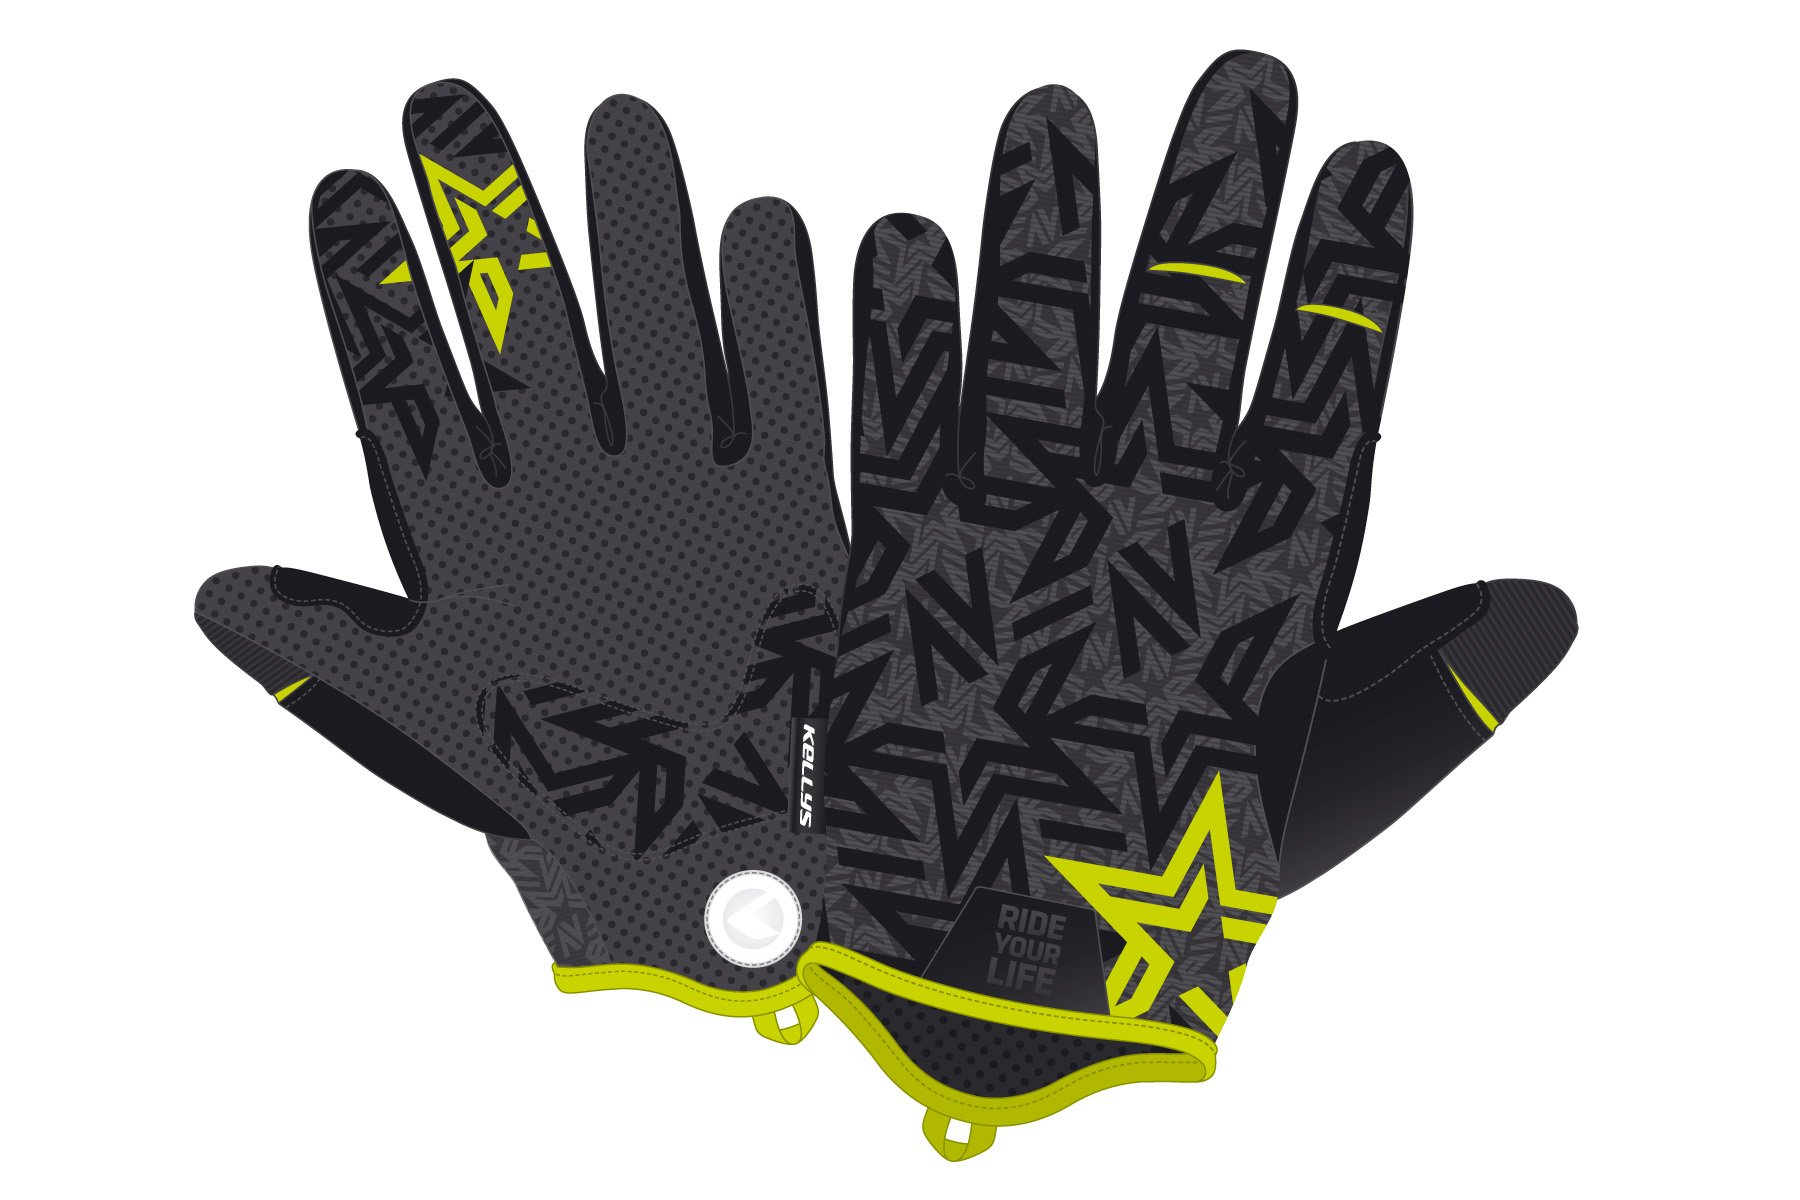 Handschuhe IMPULSE long lime XS - Handschuhe IMPULSE long lime XS